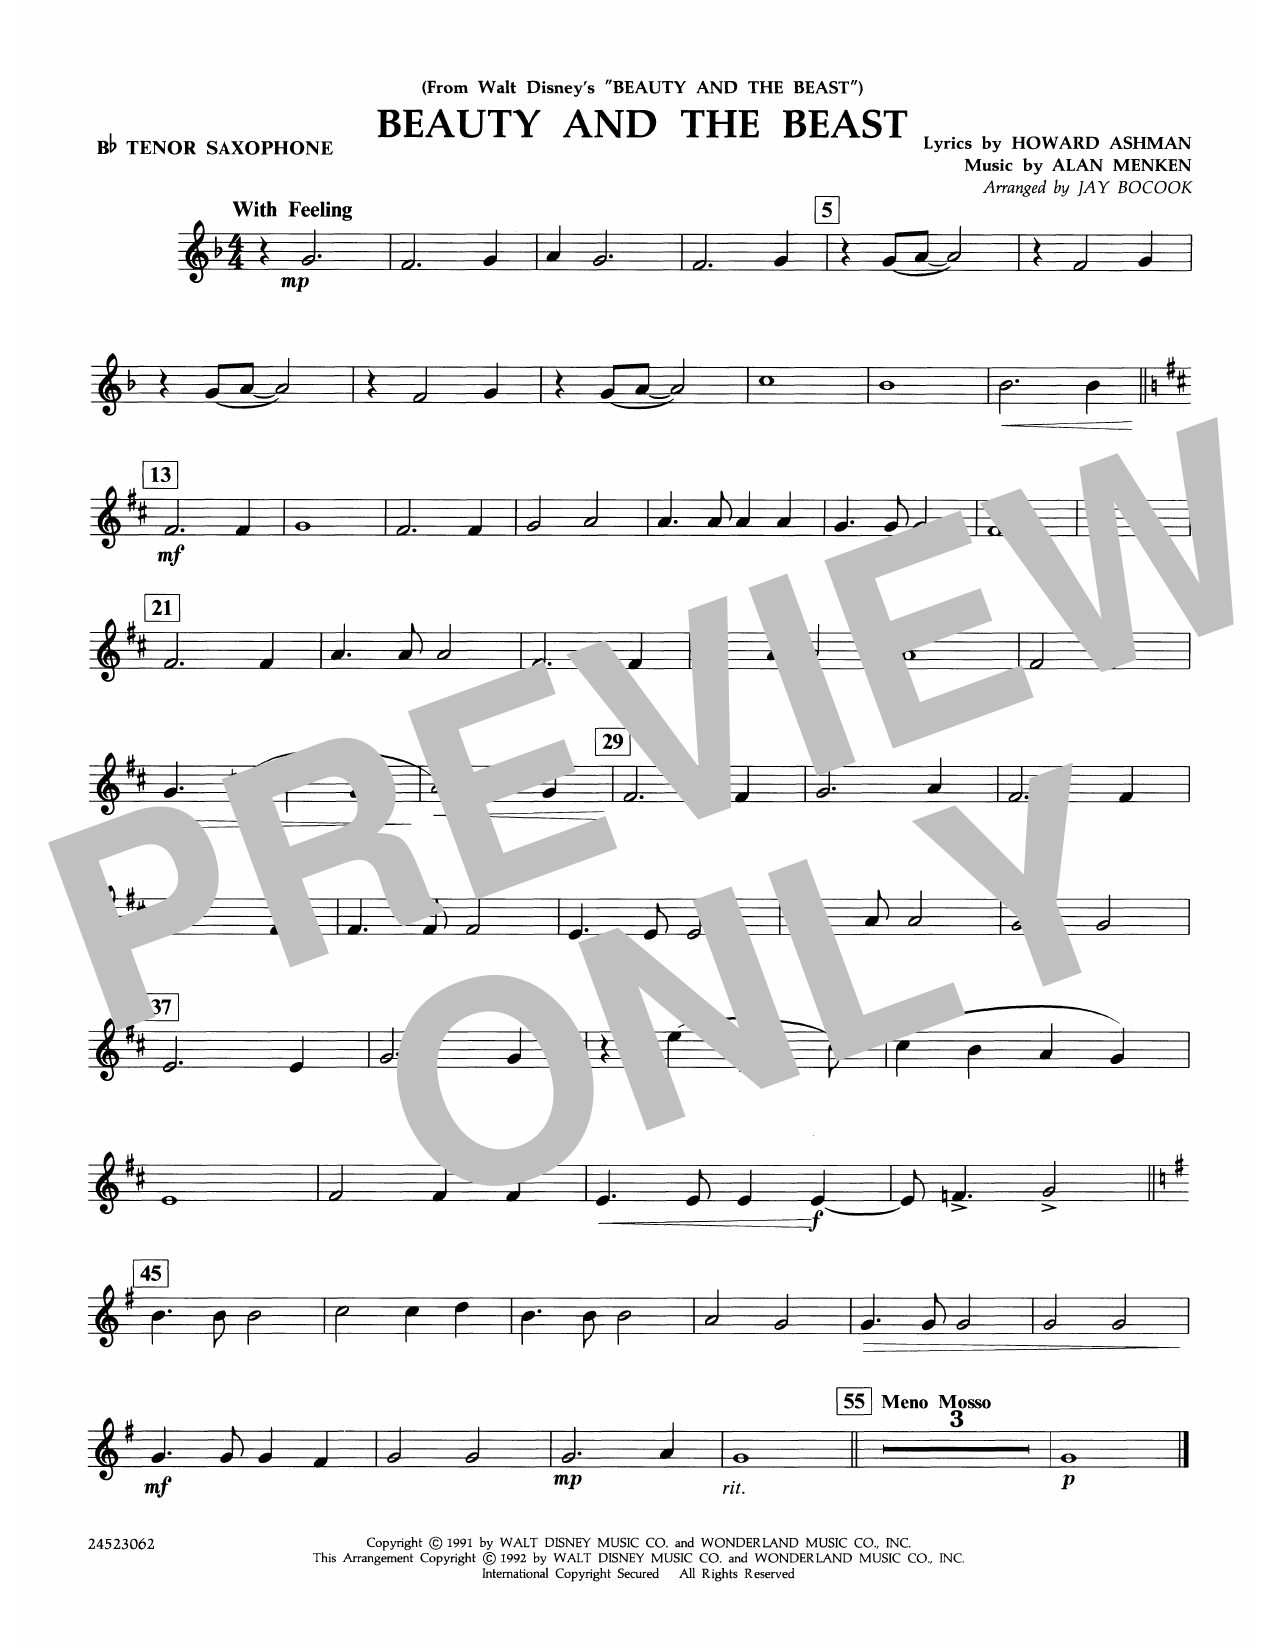 Beauty and the Beast - Bb Tenor Saxophone Sheet Music